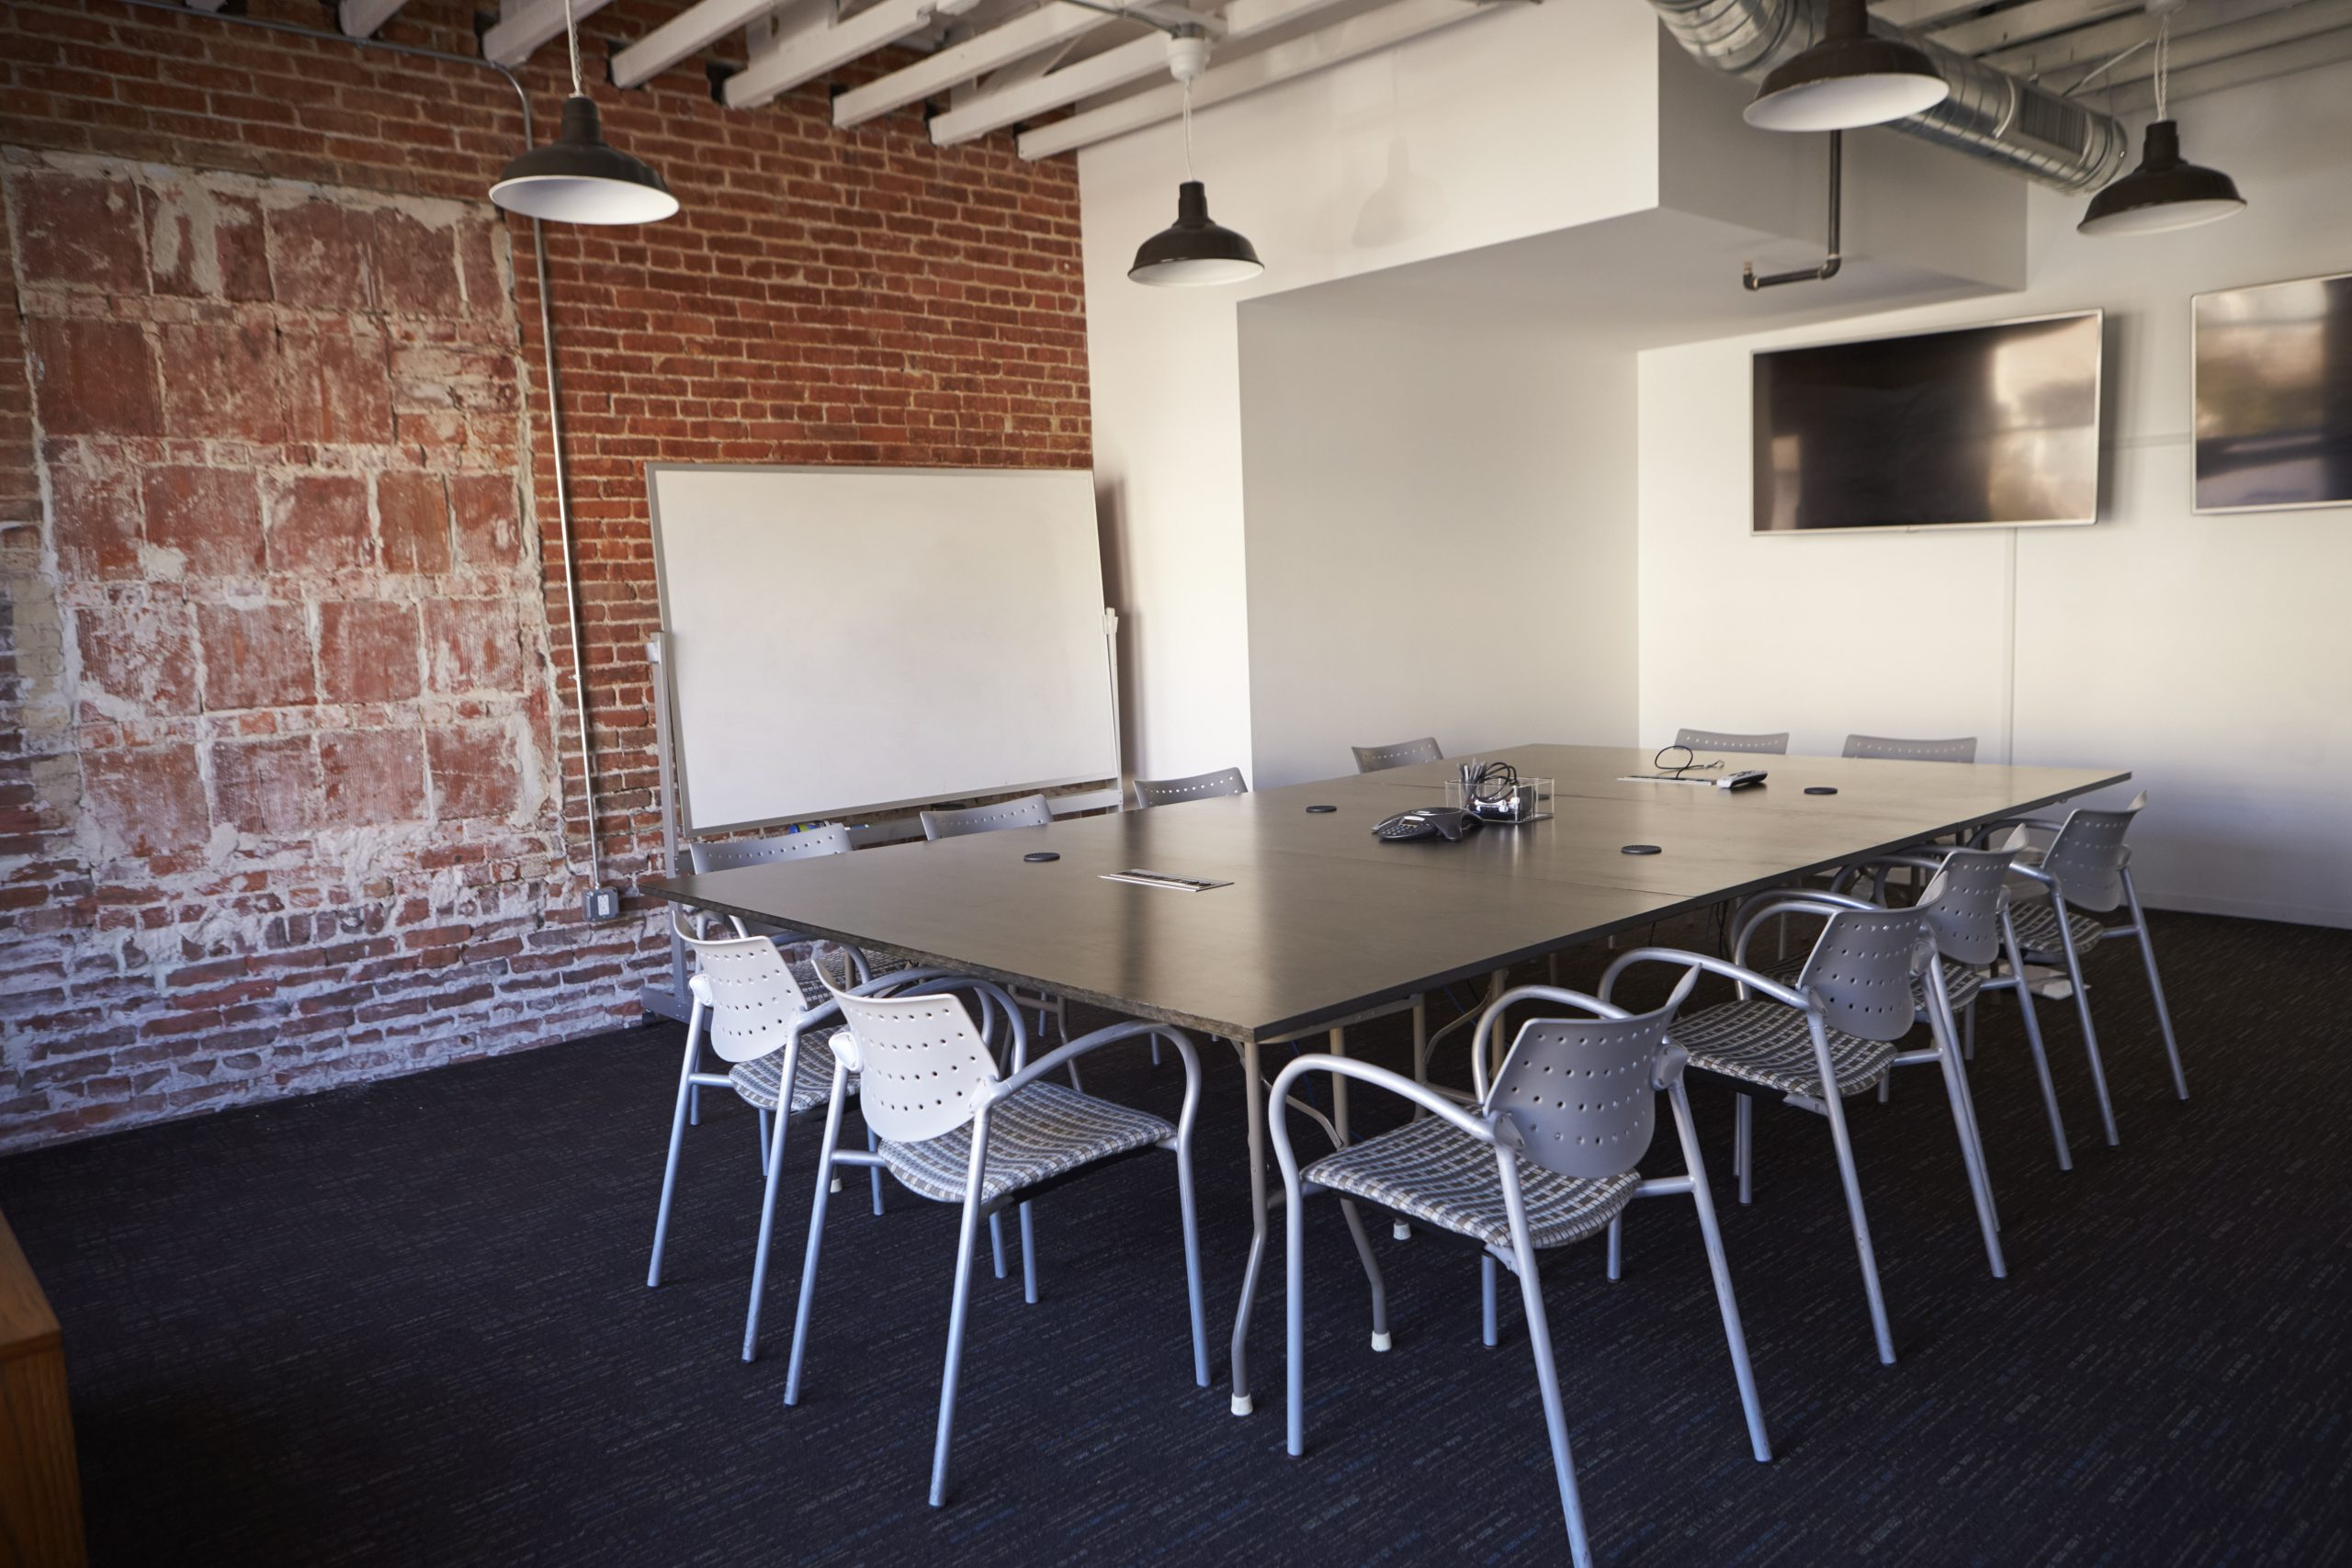 The environment of your meeting room needs to be considered when adding AV technology.